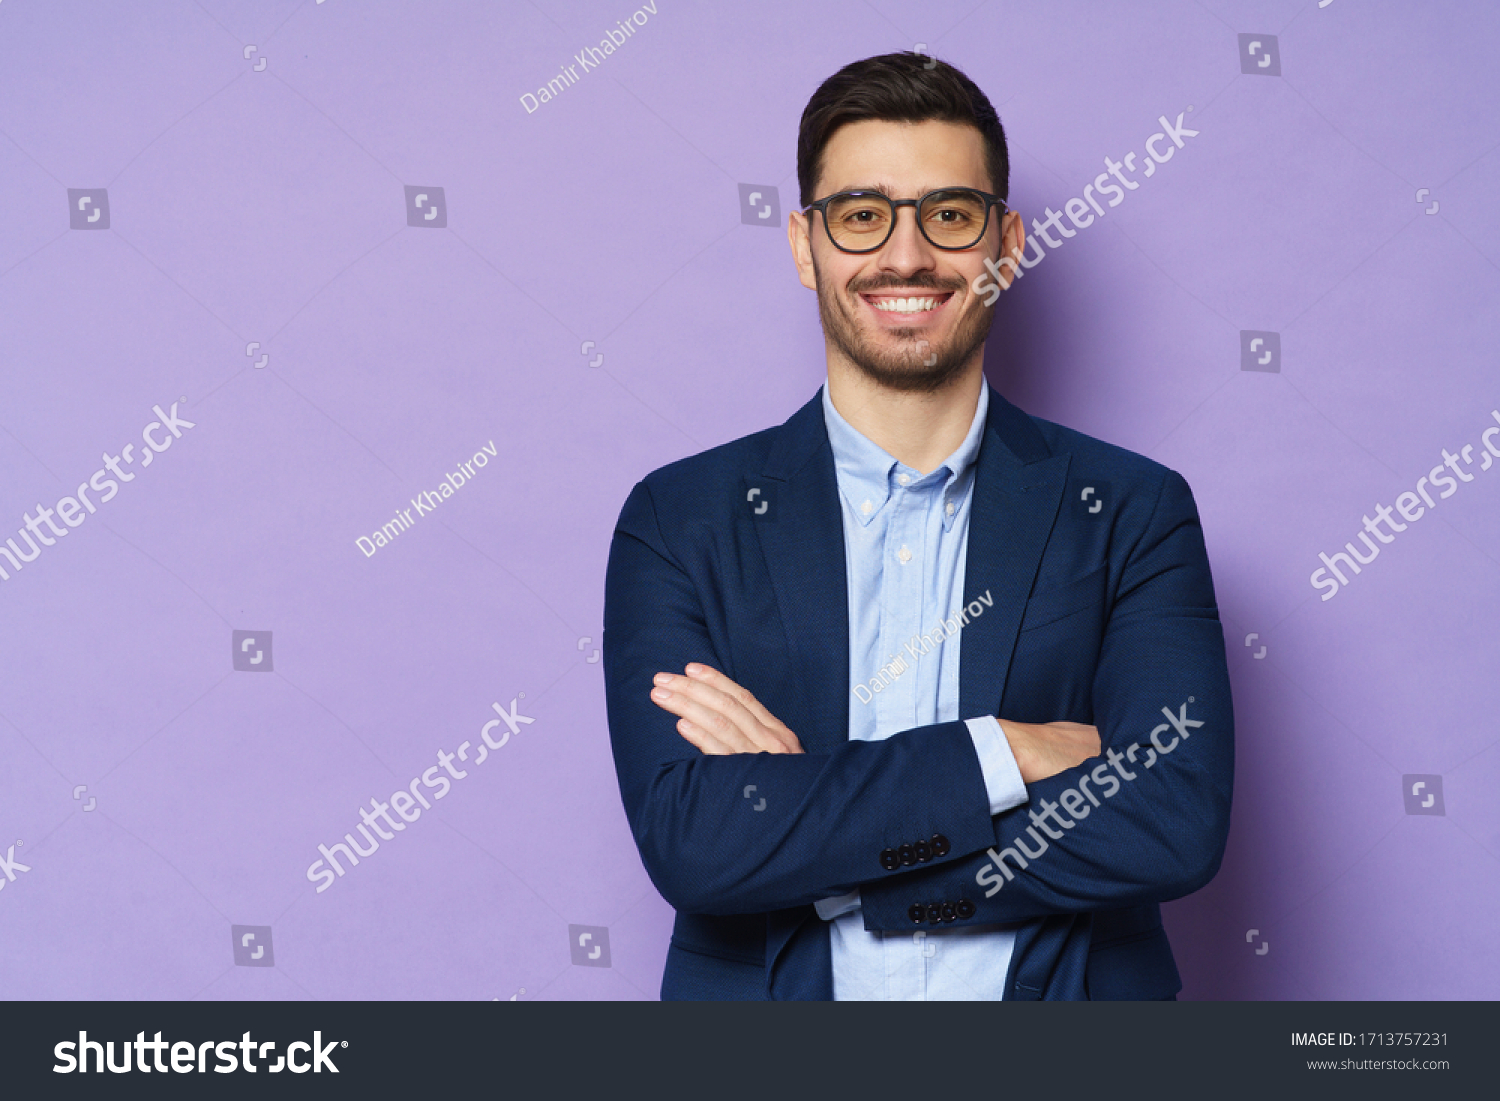 Young buisnessman wearing eyeglasses, jacket and shirt, holding arms crossed, looking at camera with happy confident smile, standing against purple background #1713757231